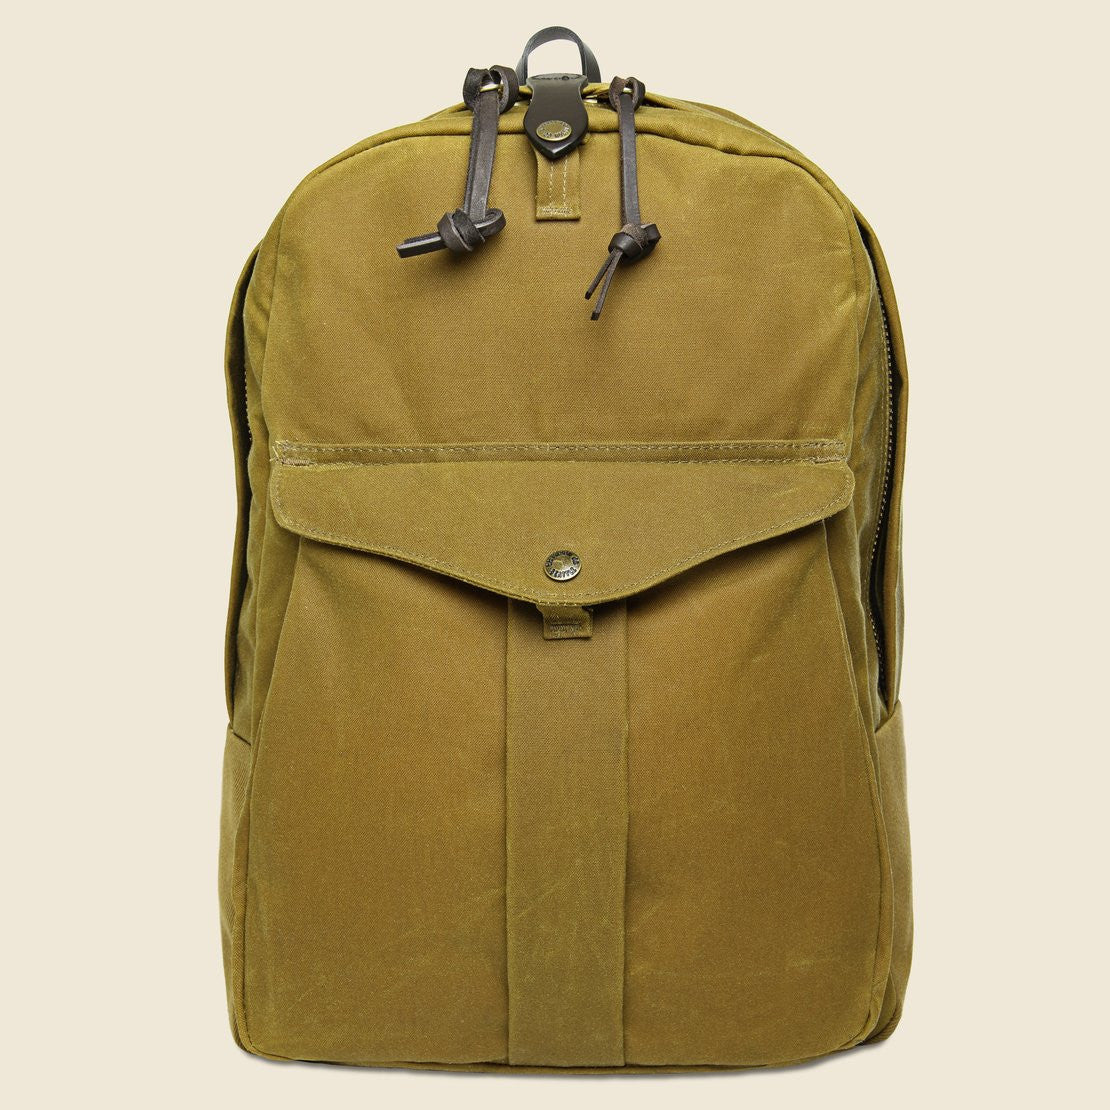 Filson Tin Cloth Journeyman Backpack - Tan